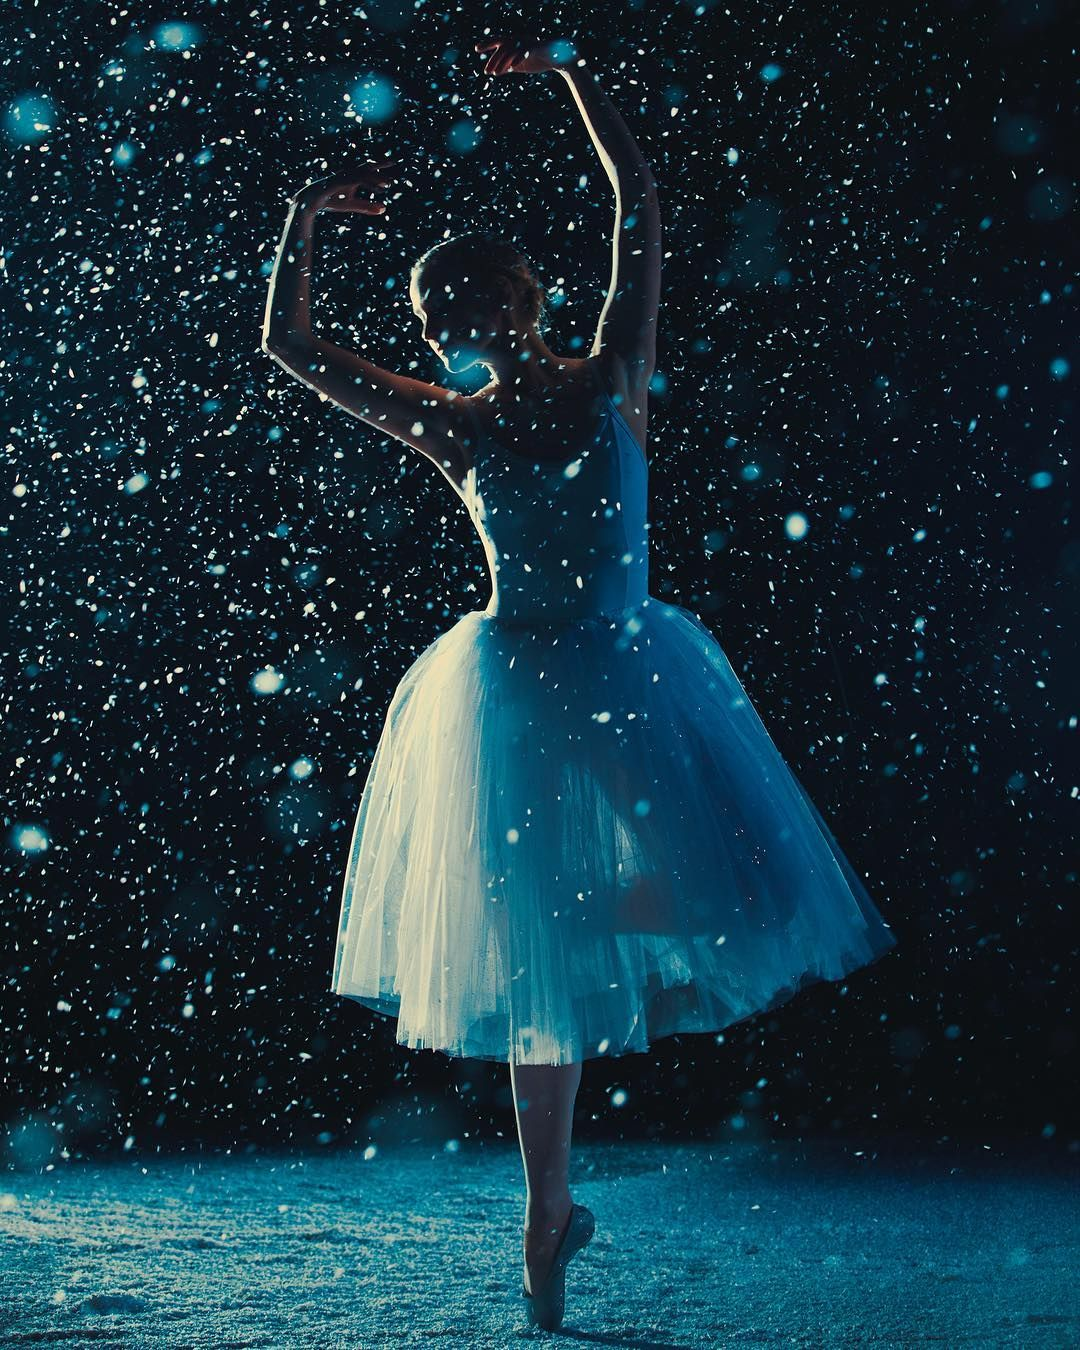 Maison Repetto wishes you a wonderful and magical Christmas!